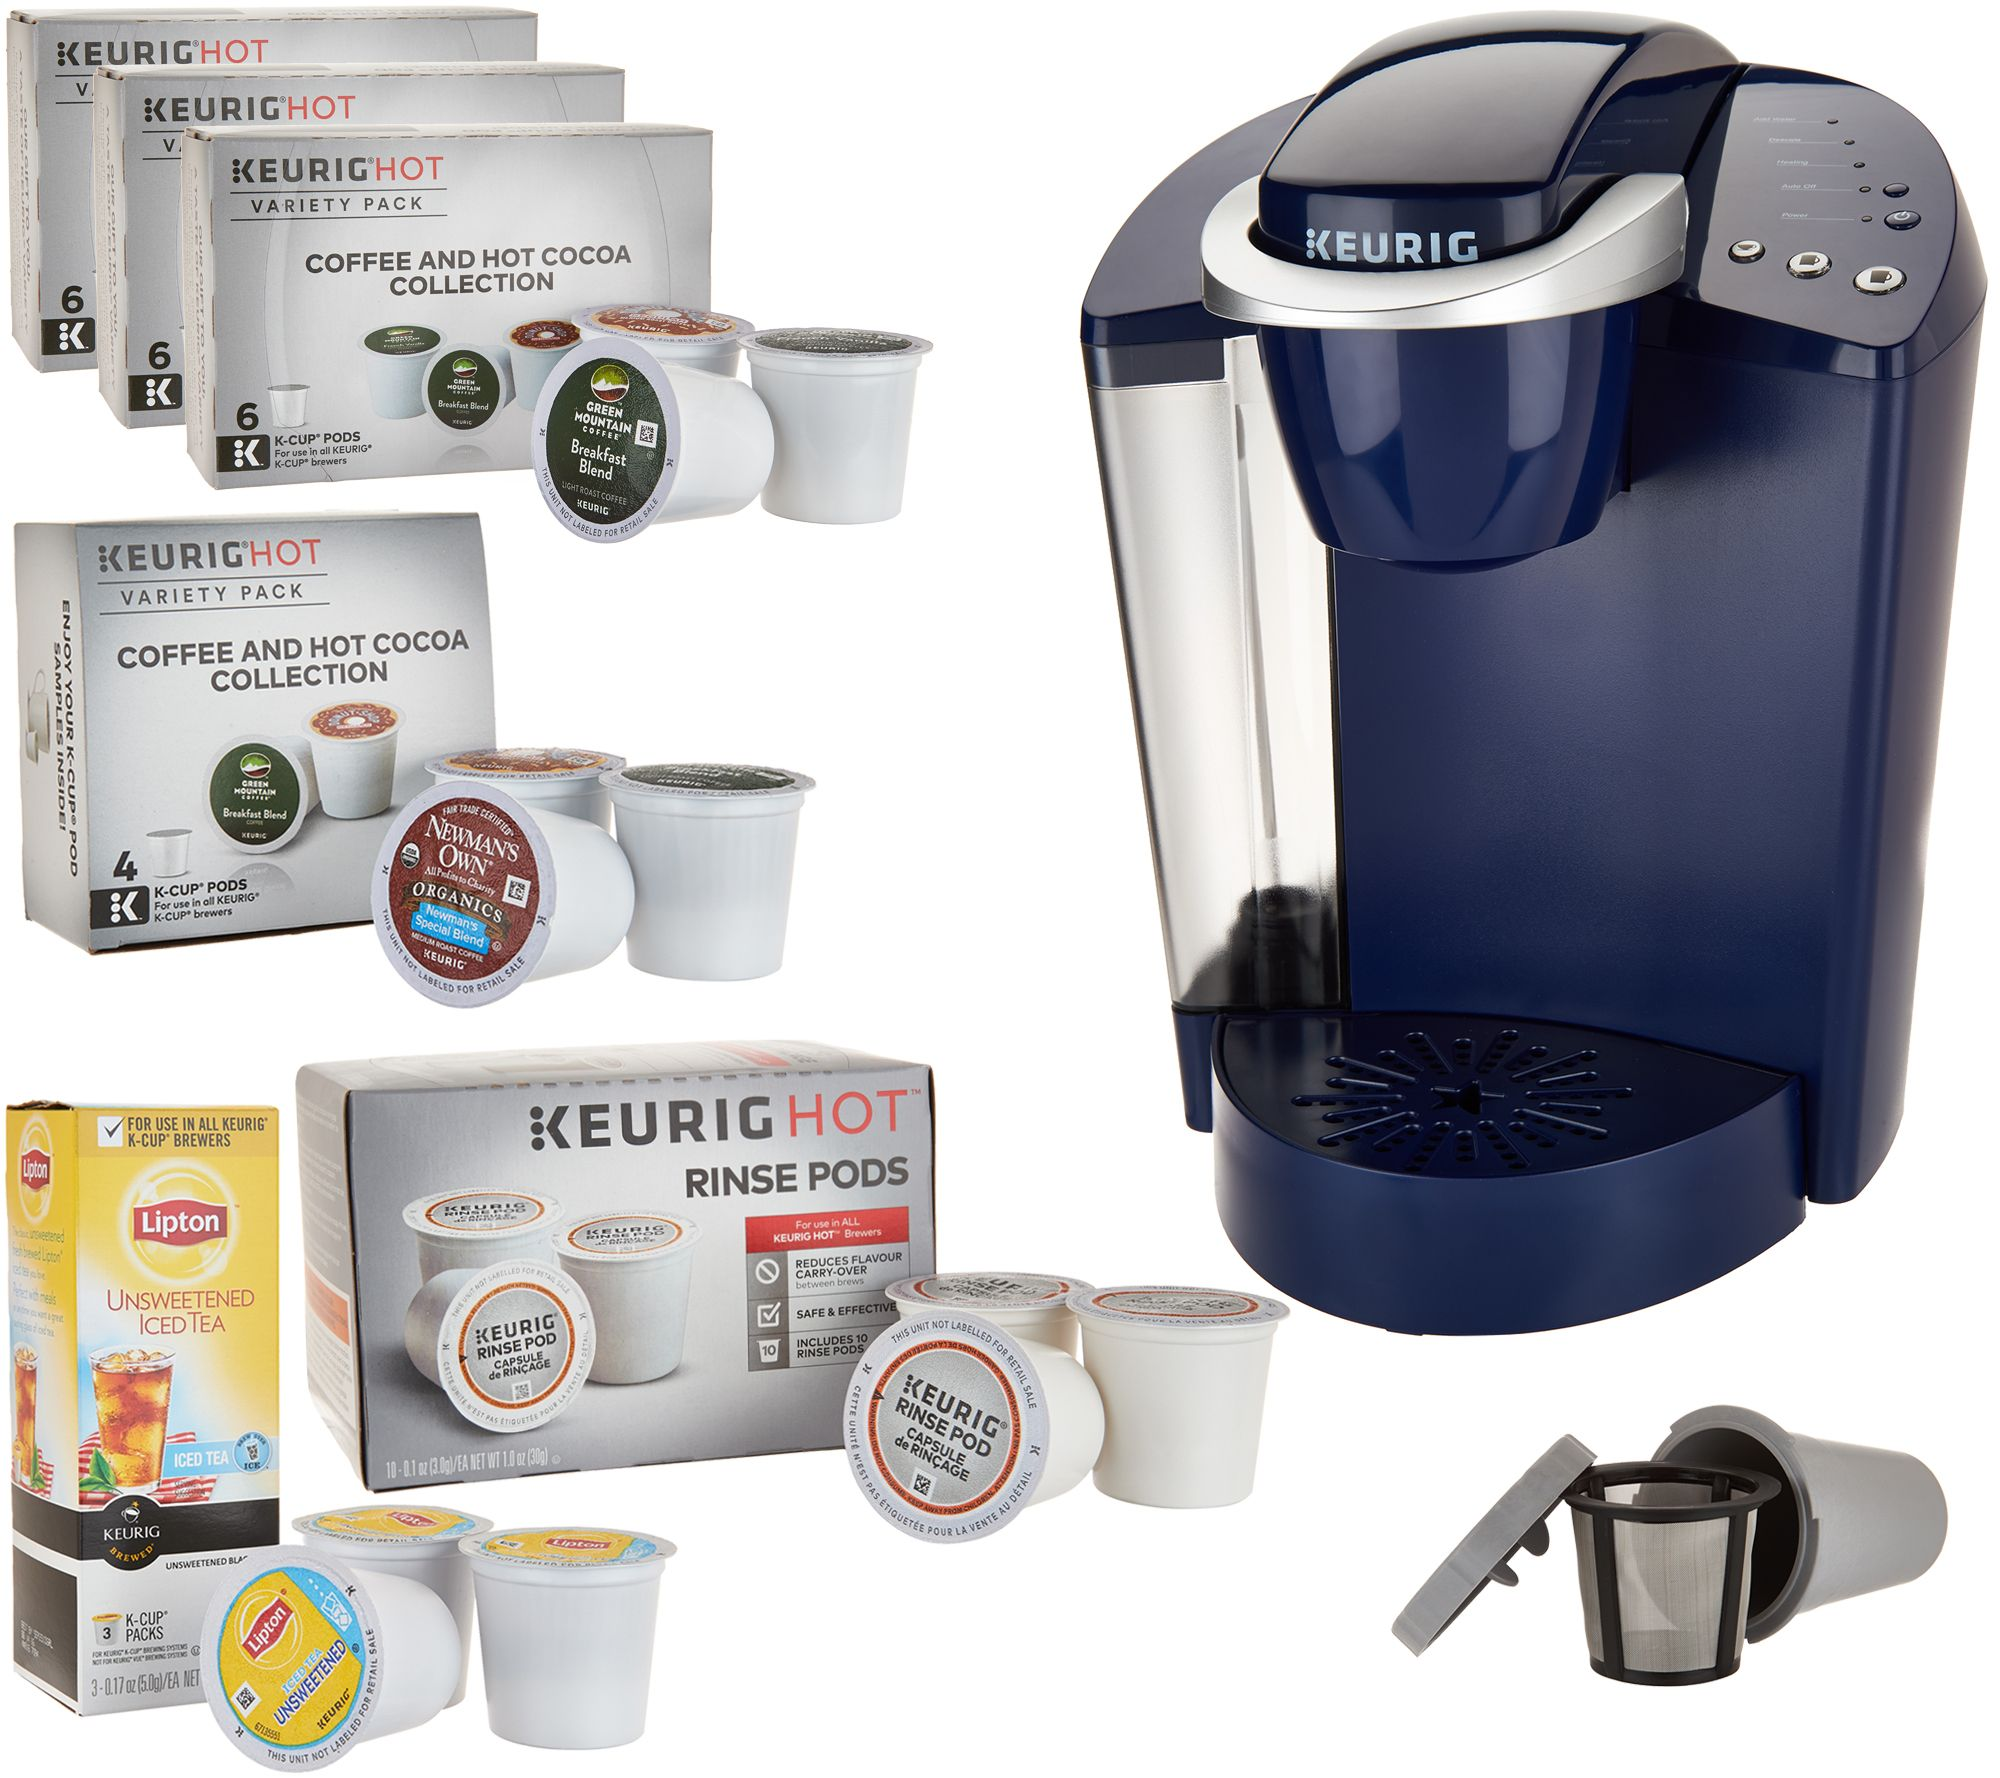 keurig k55 coffee maker w my kcup 31 kcup pods u0026 water filters page 1 u2014 qvccom - Espresso K Cups